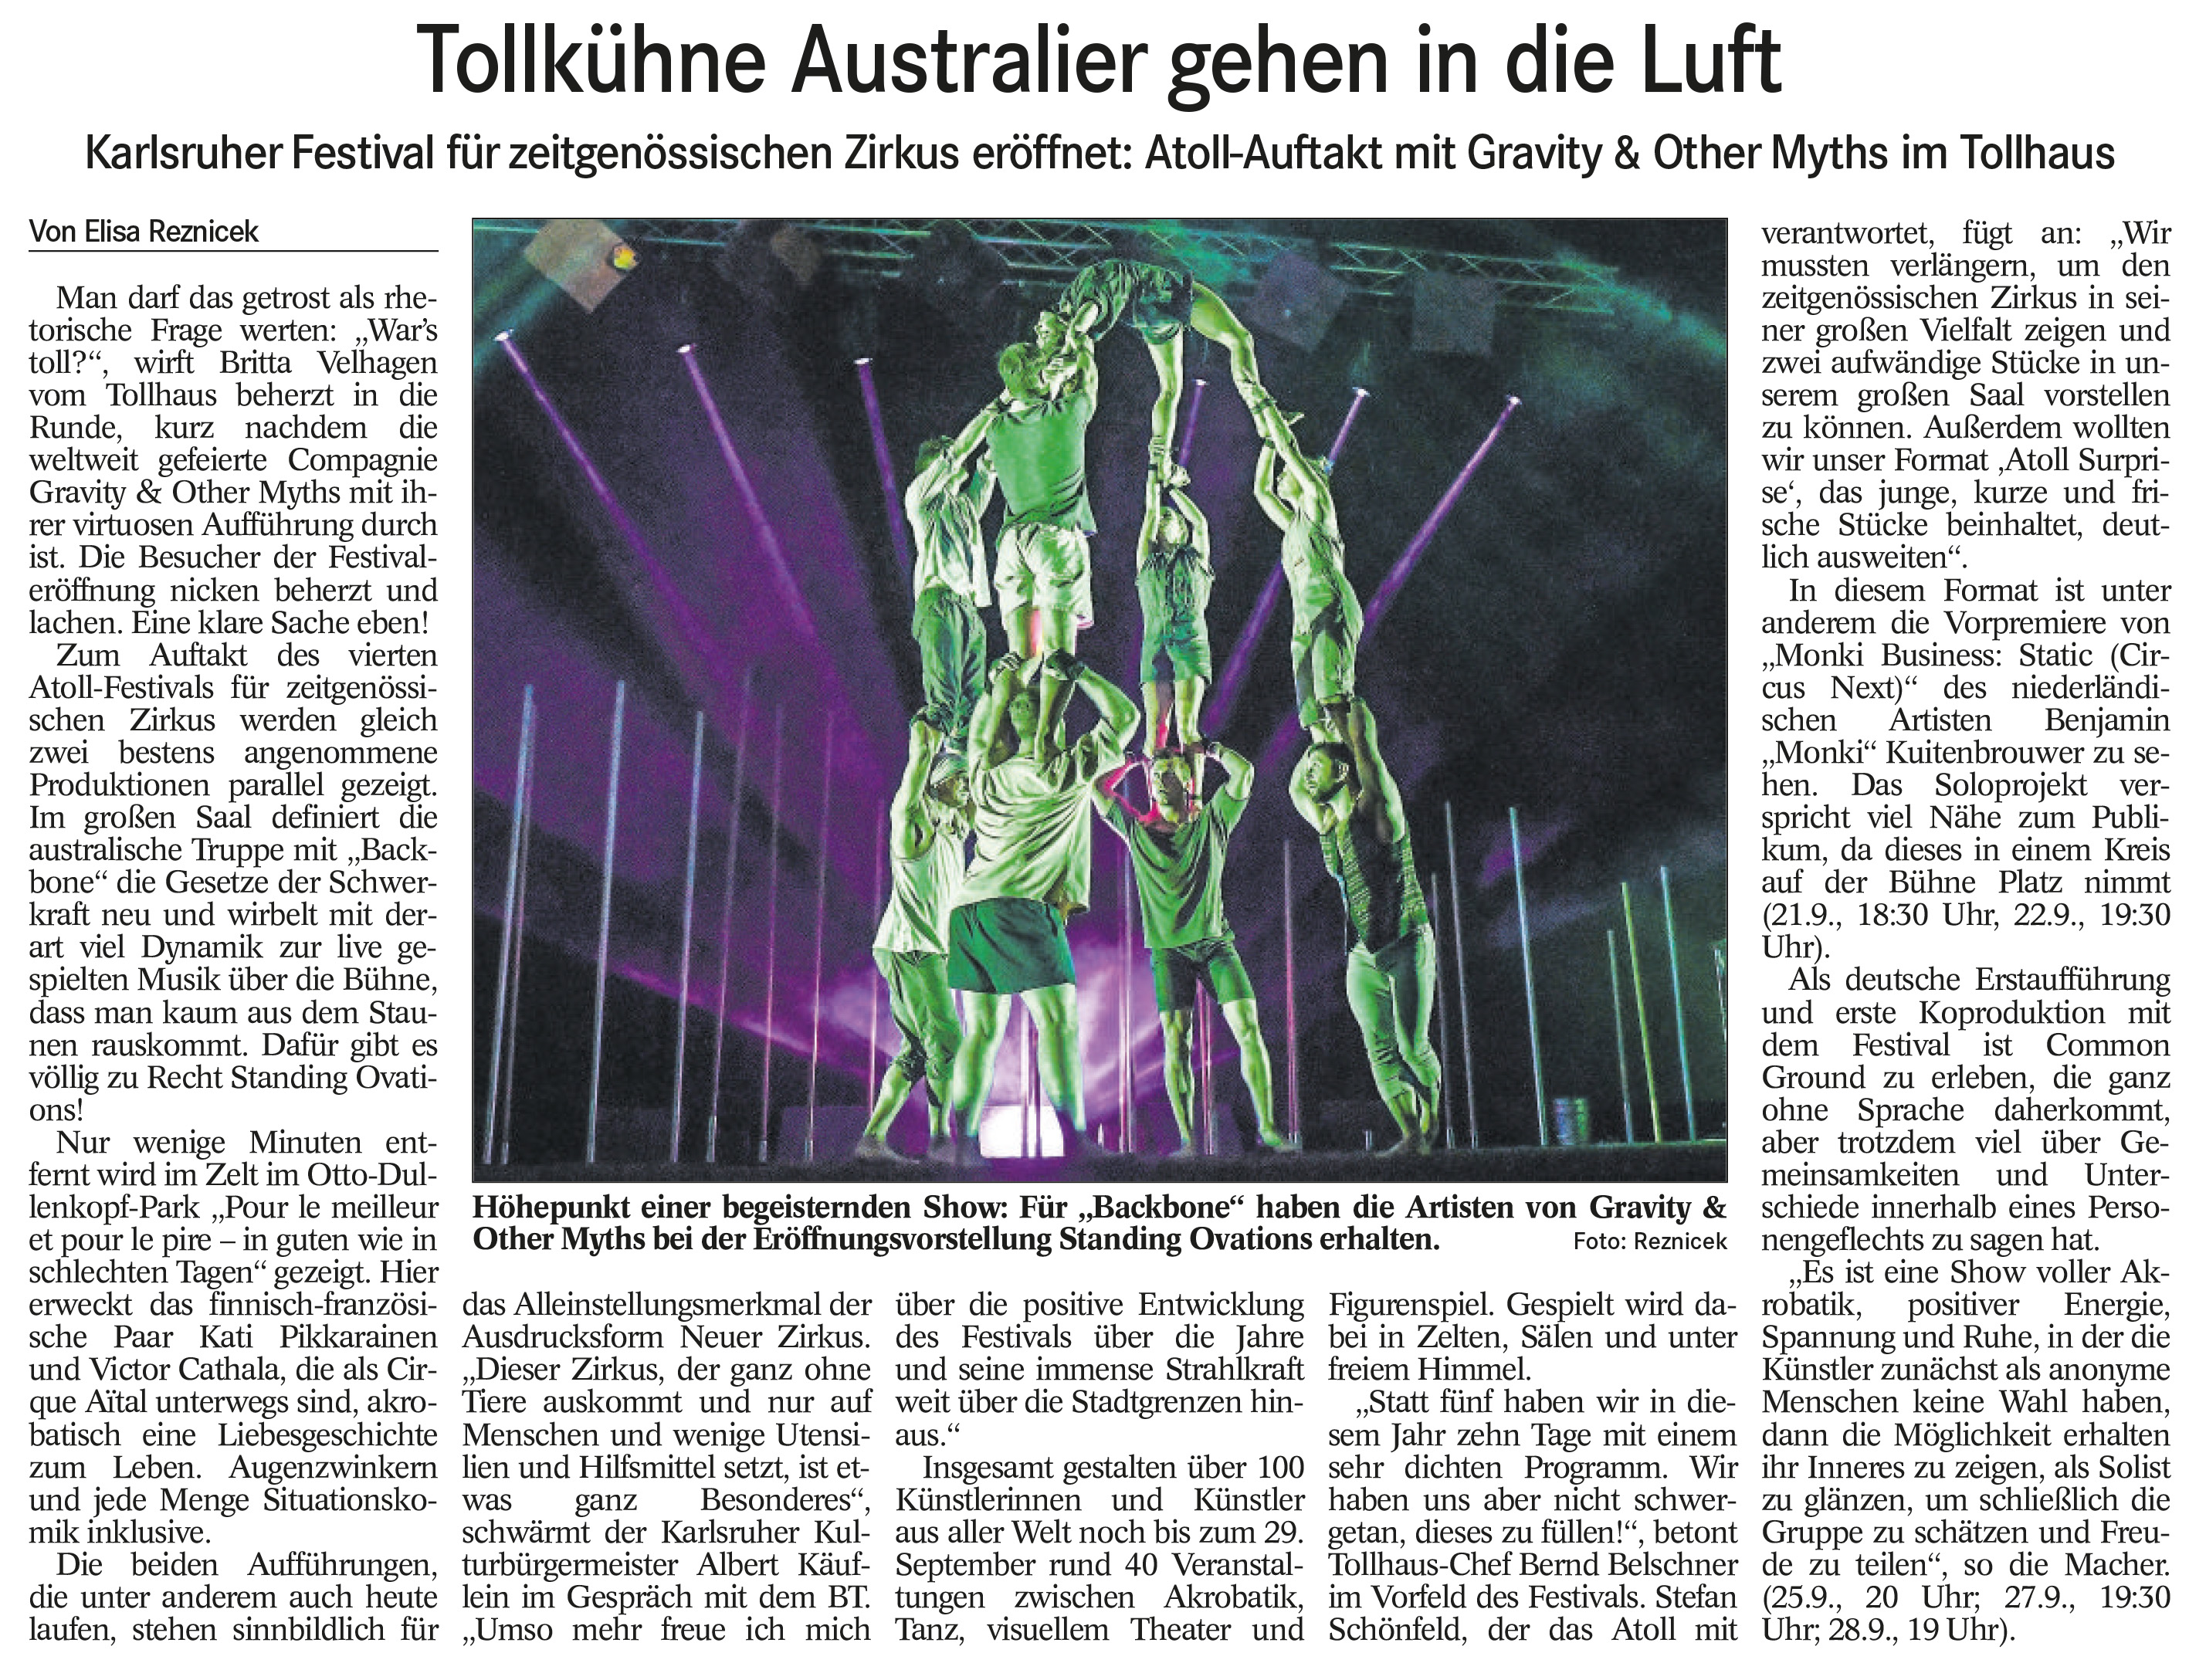 ATOLL Festival mit Gravity & Other Myths (BT 20.9.19, Text & Bild: E. Reznicek, lebelieberlauter.de)